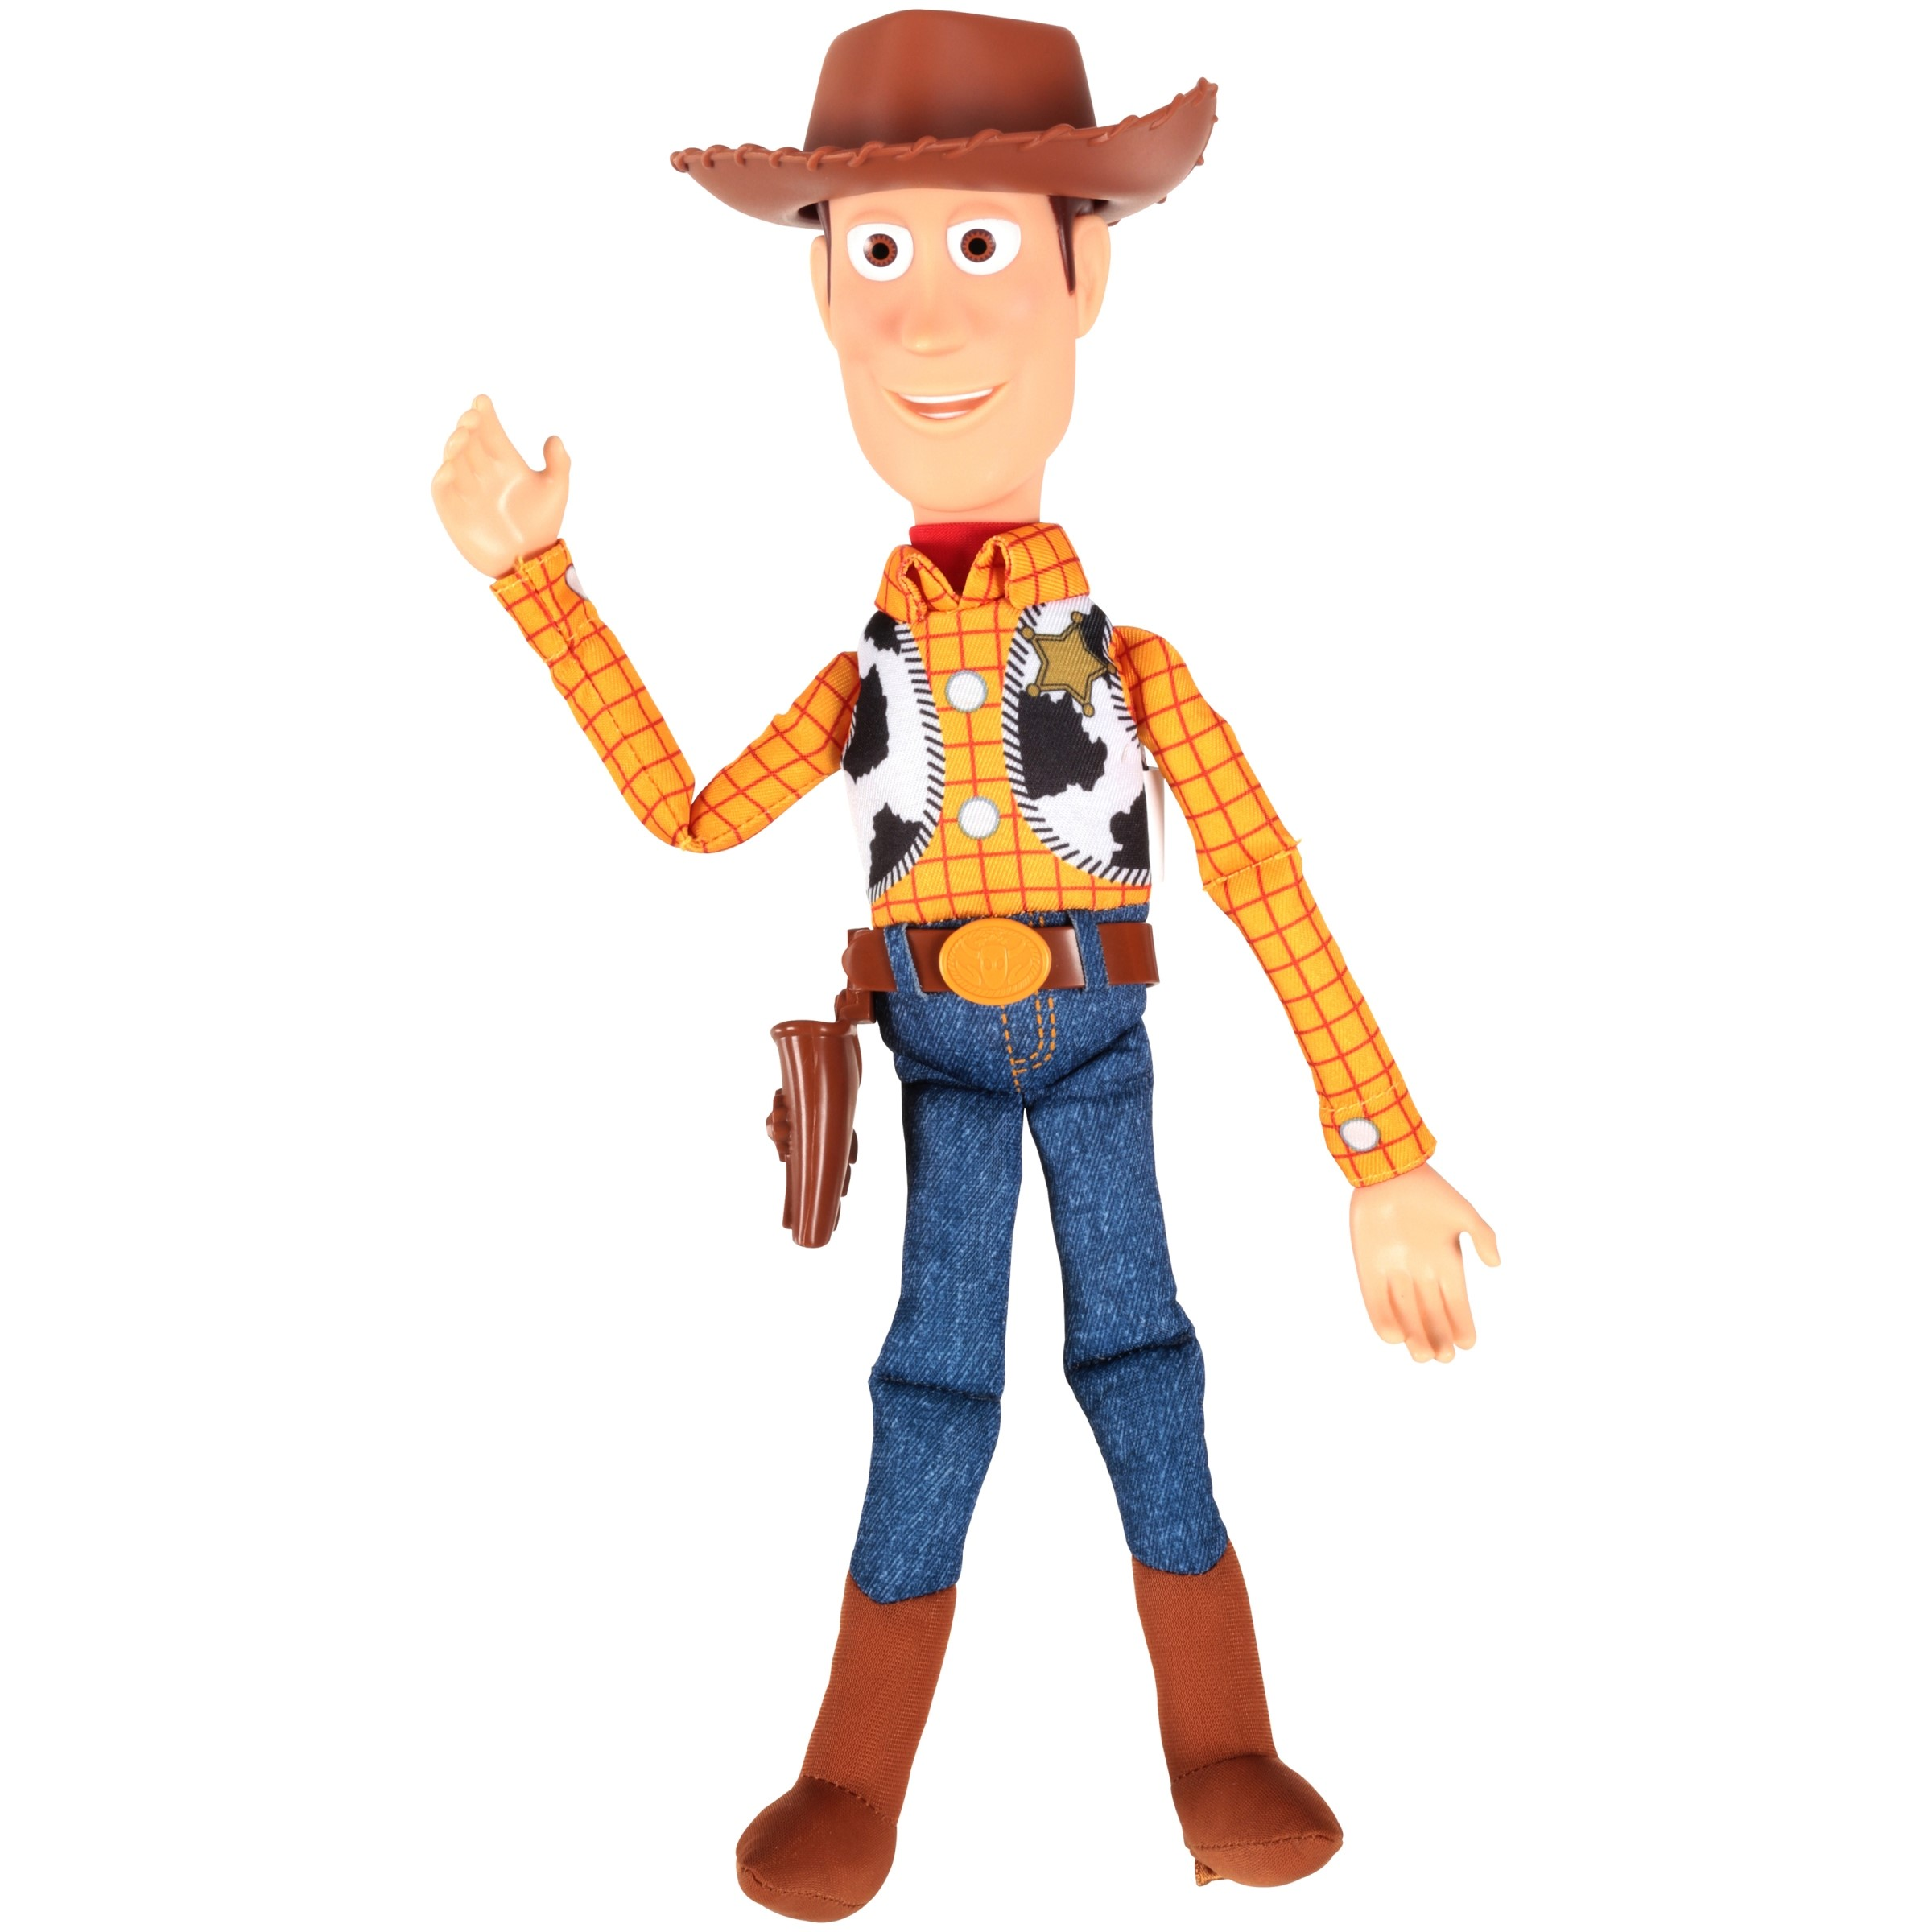 Toy Story 4 WOODY TALKING ACTION FIGURE